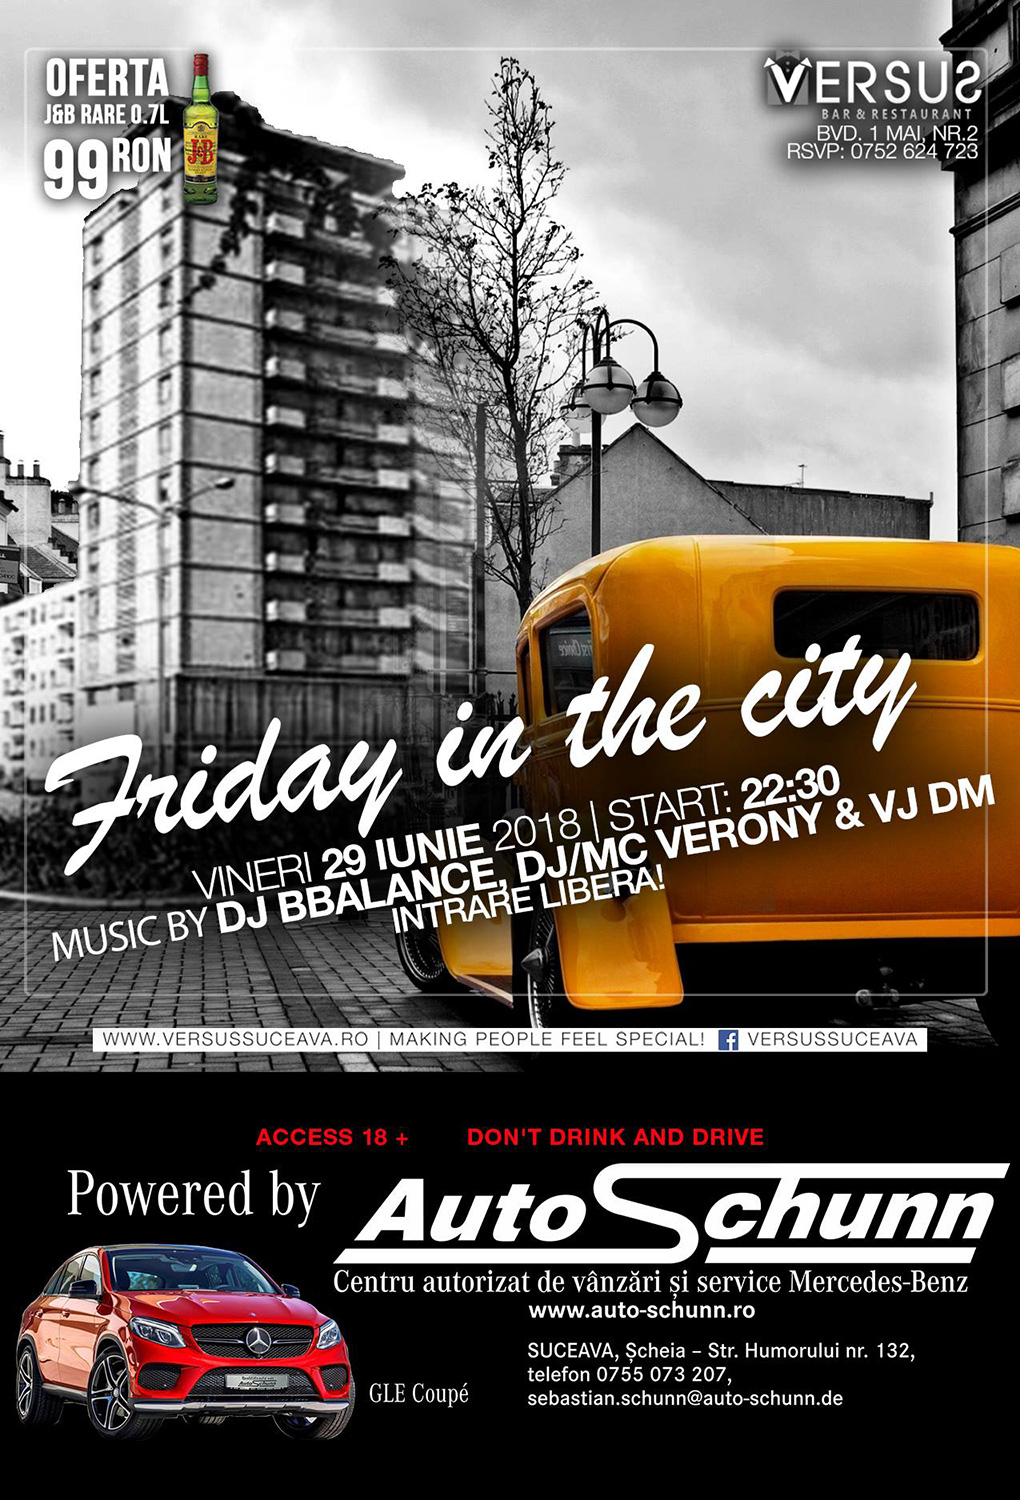 Friday in the city